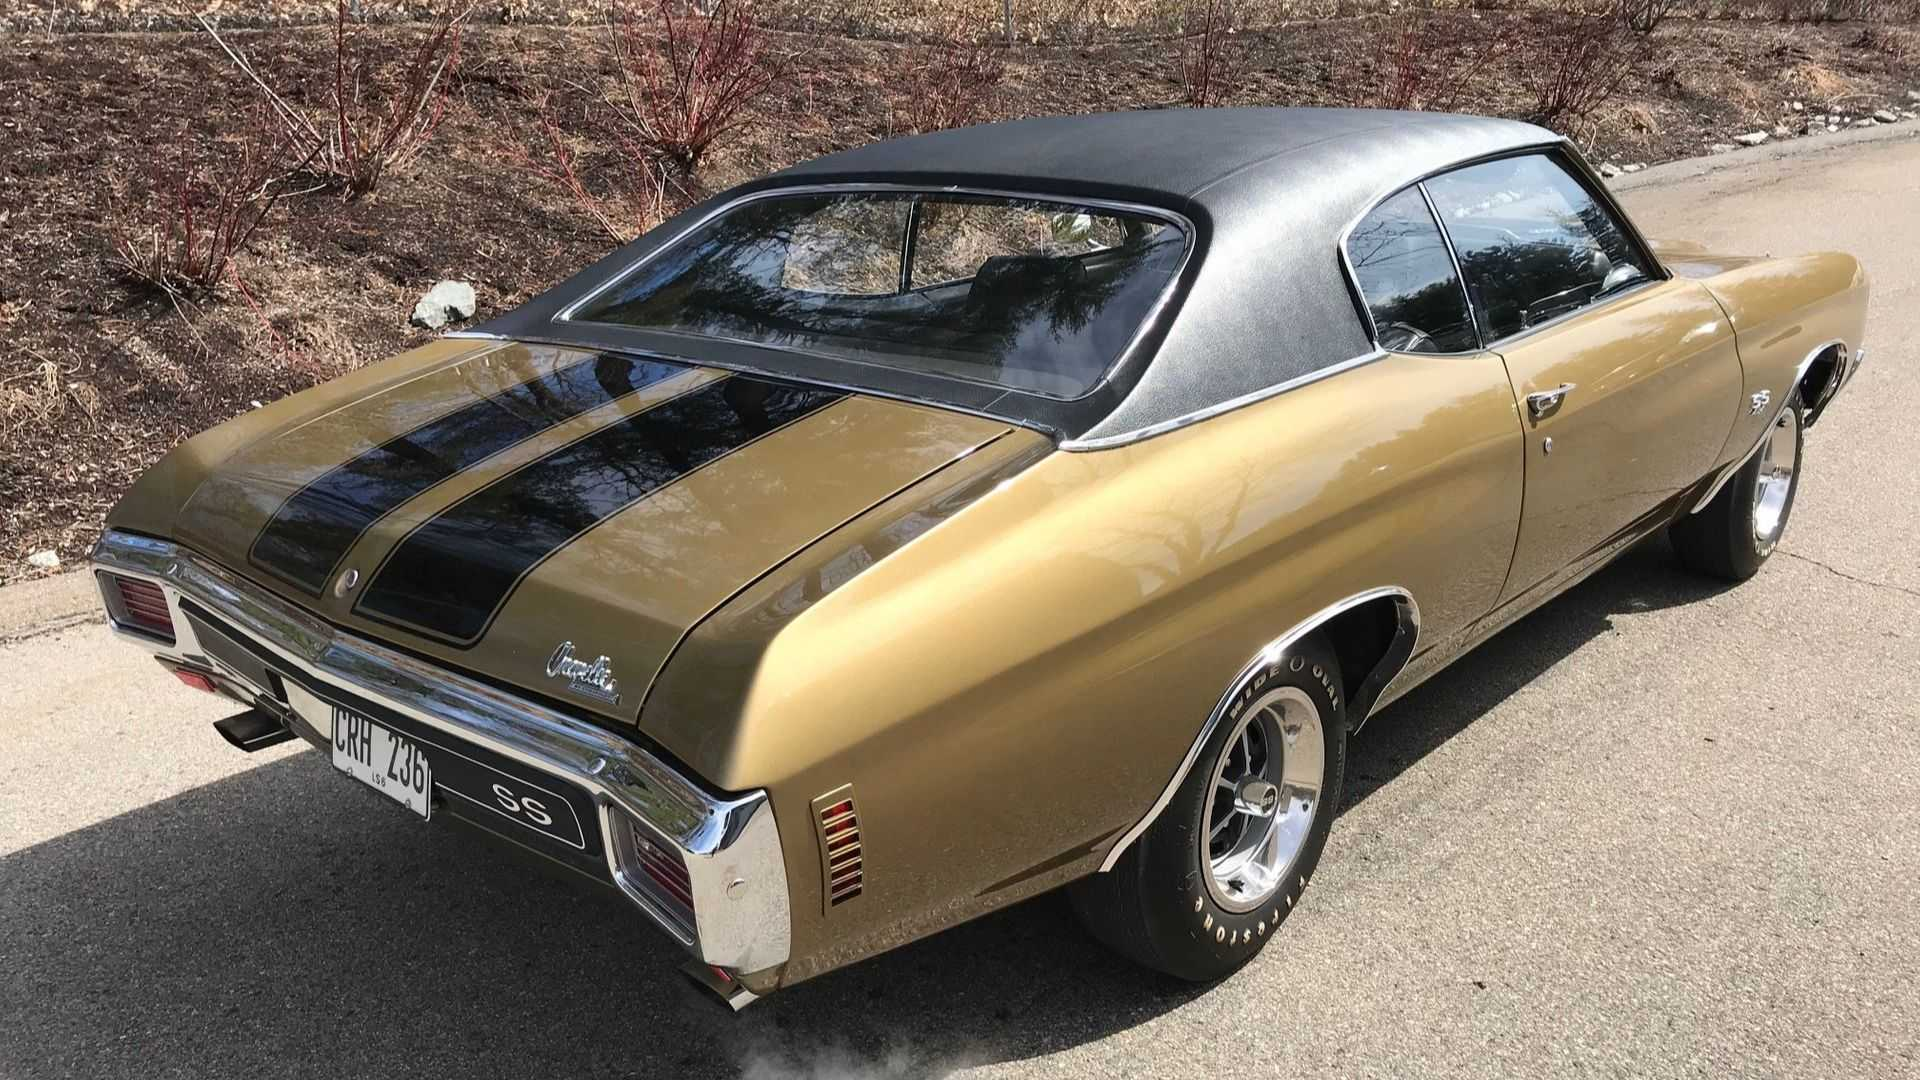 This 1970 Chevrolet Chevelle SS LS6 Is A Rubber Melting